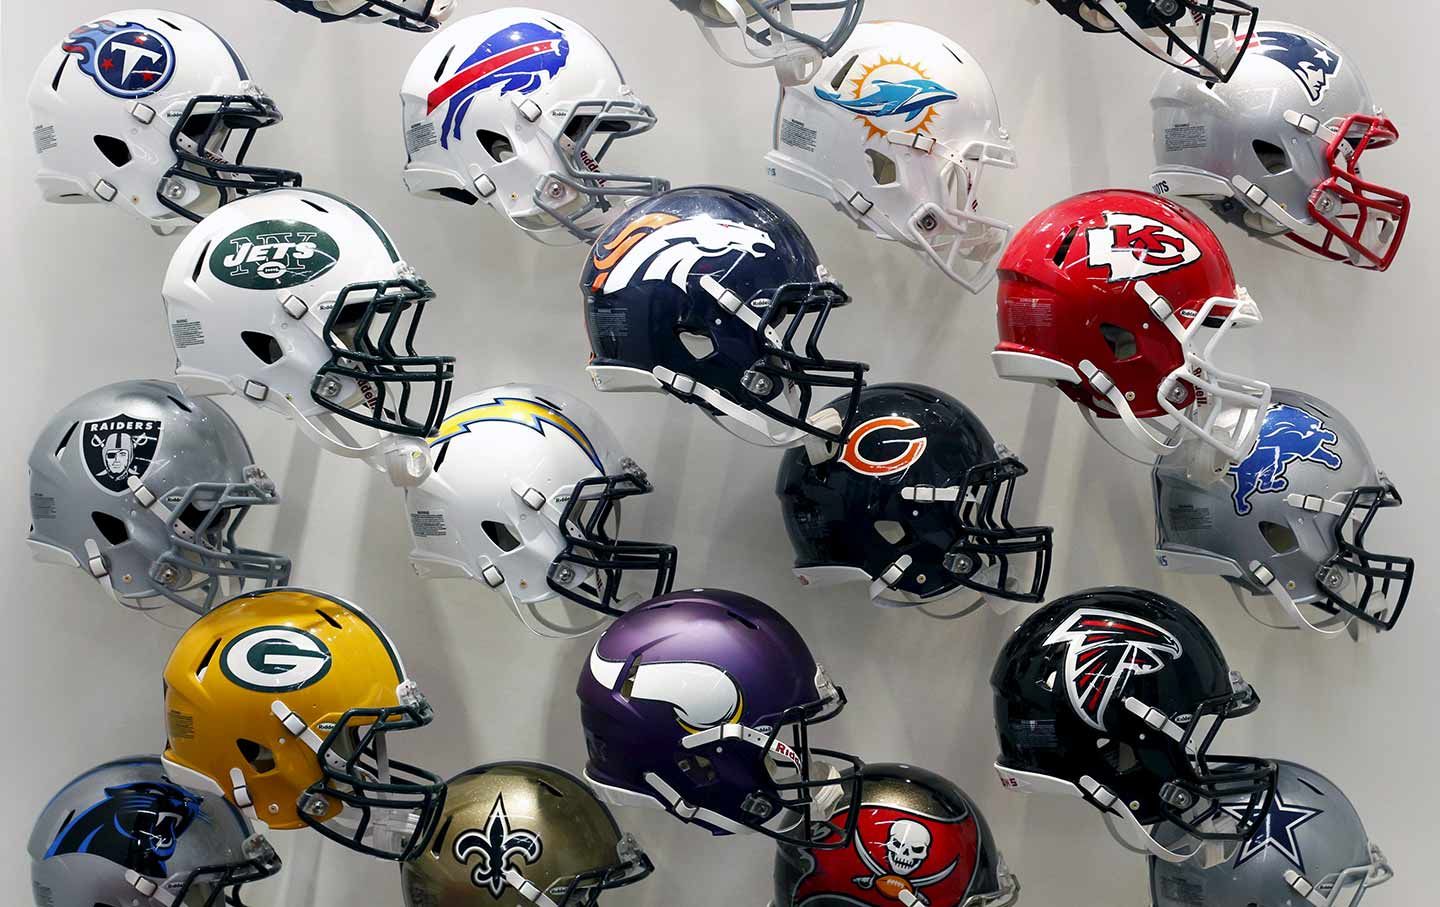 NFL team helmets on display at the NFL Headquarters in New York on December 3, 2015.